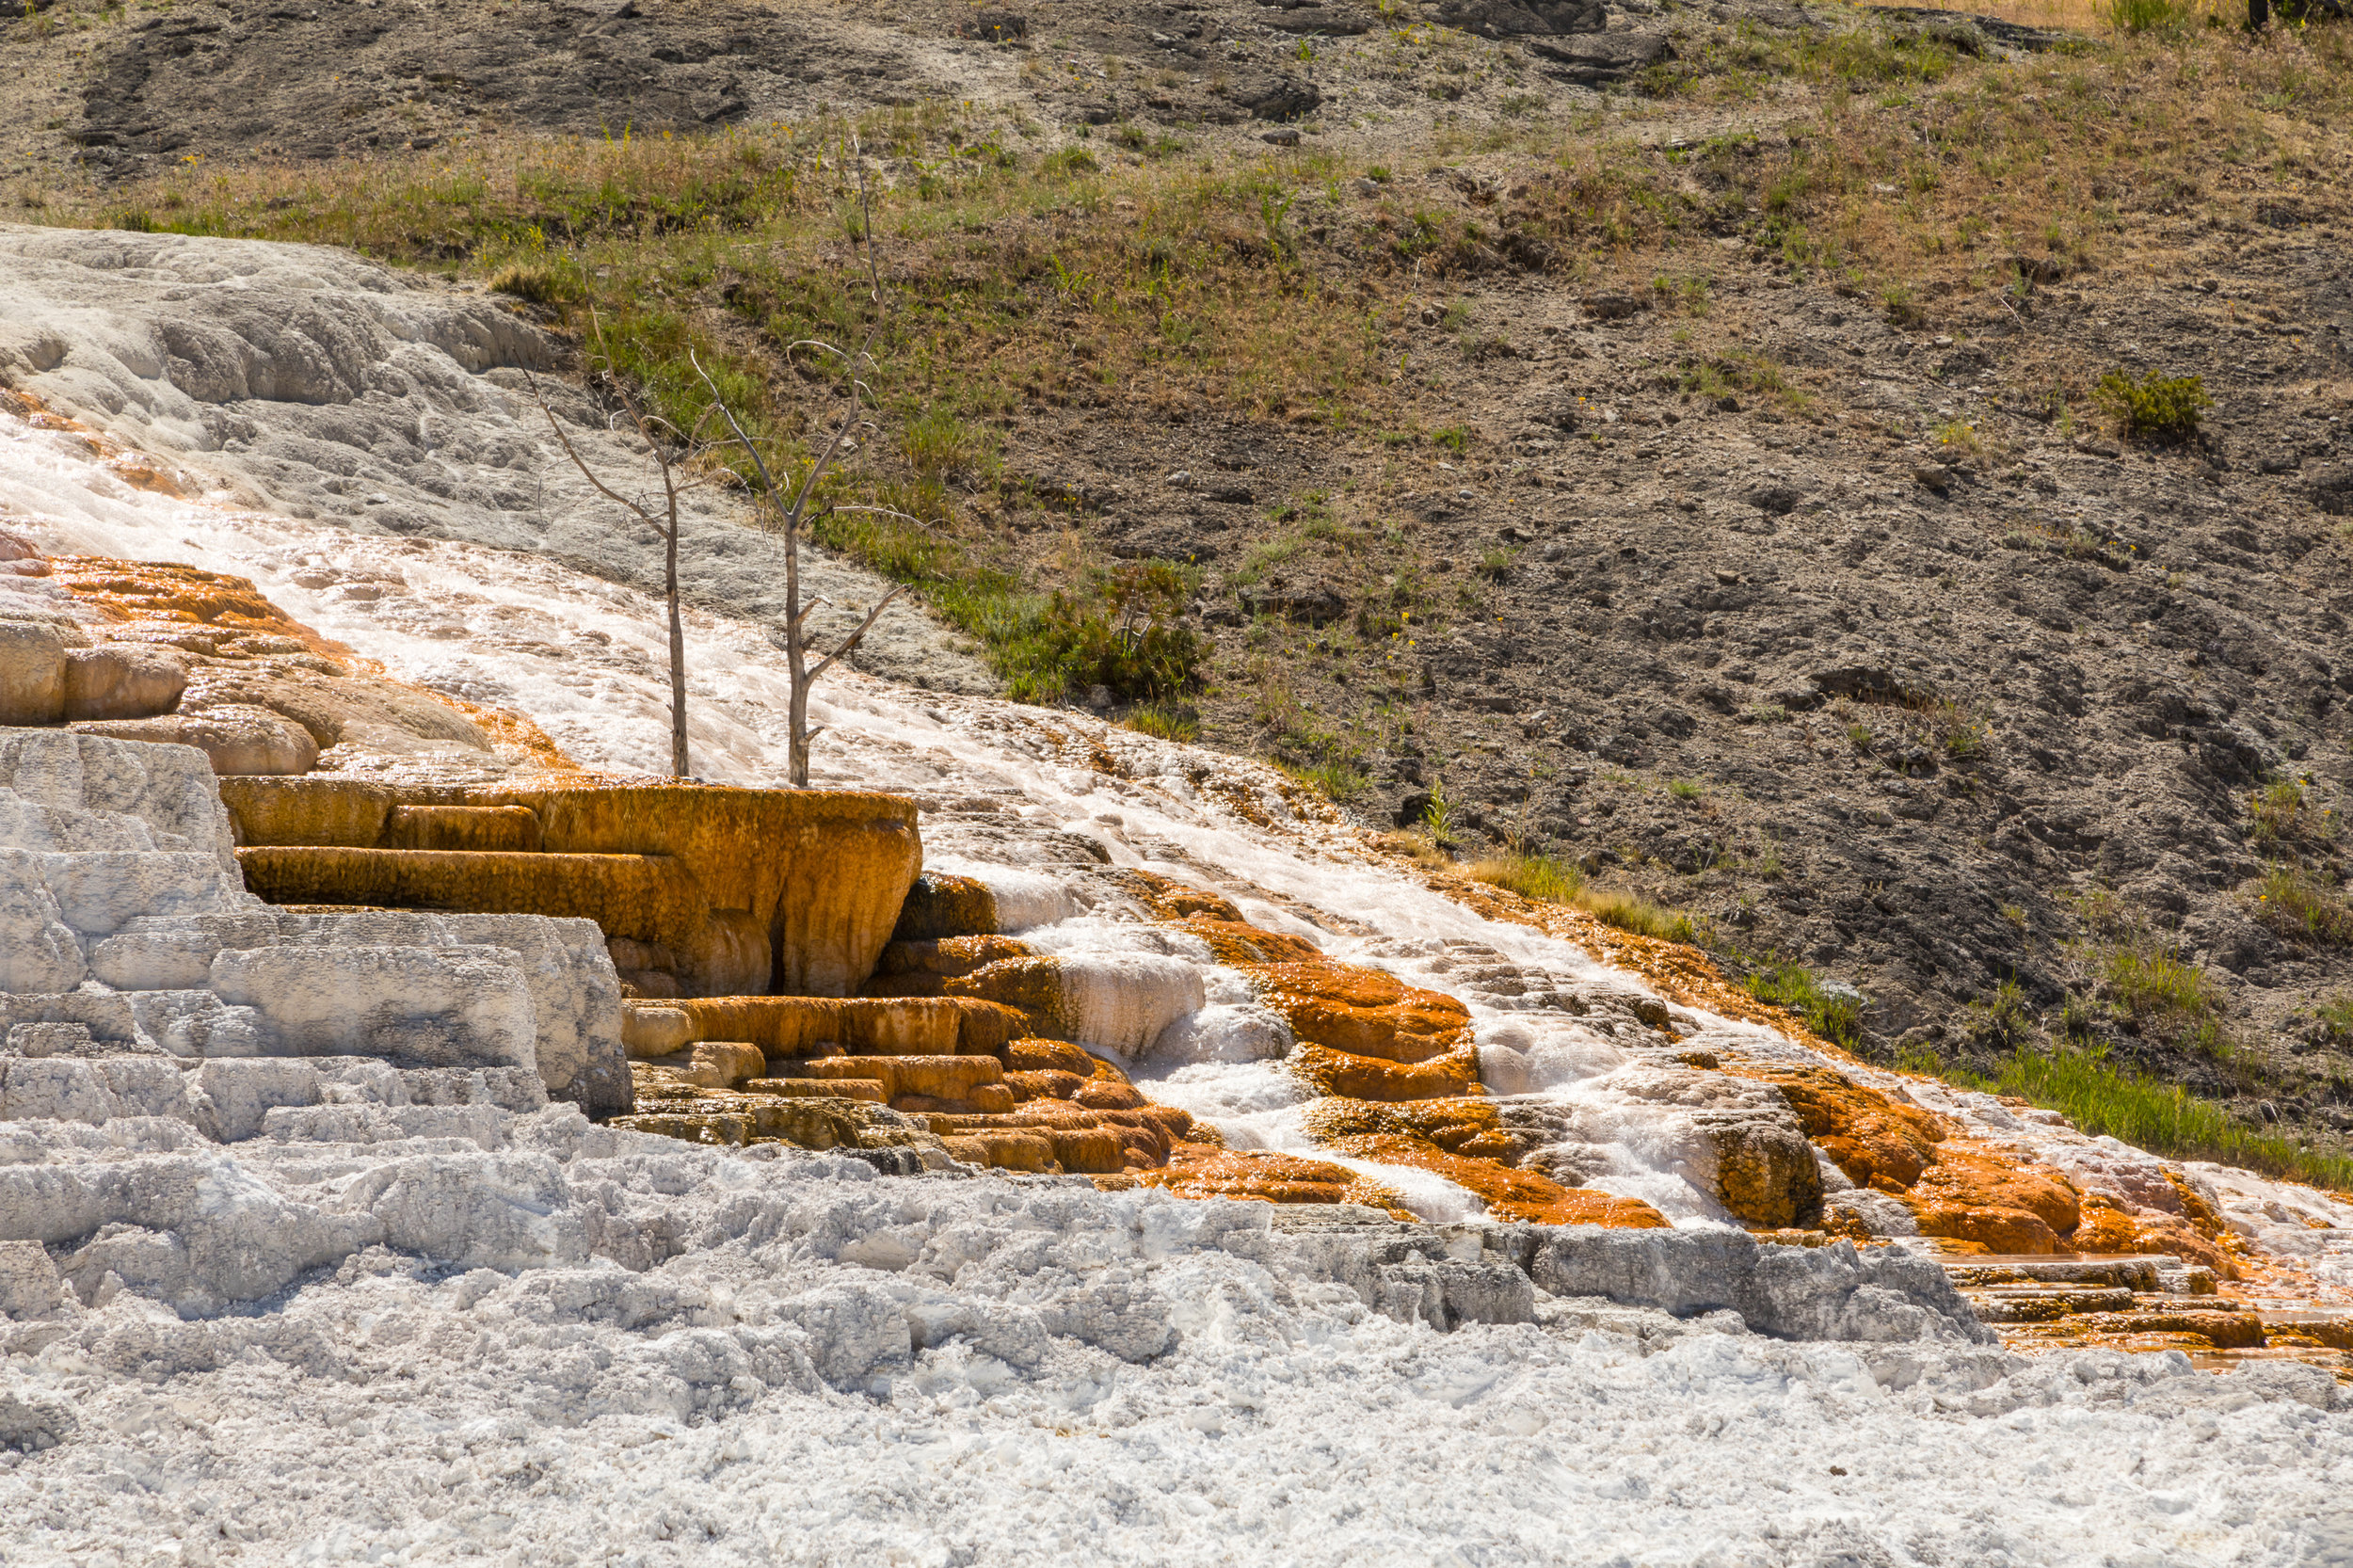 Mammoth Hot Springs, Yellowstone National Park, Image # 7568